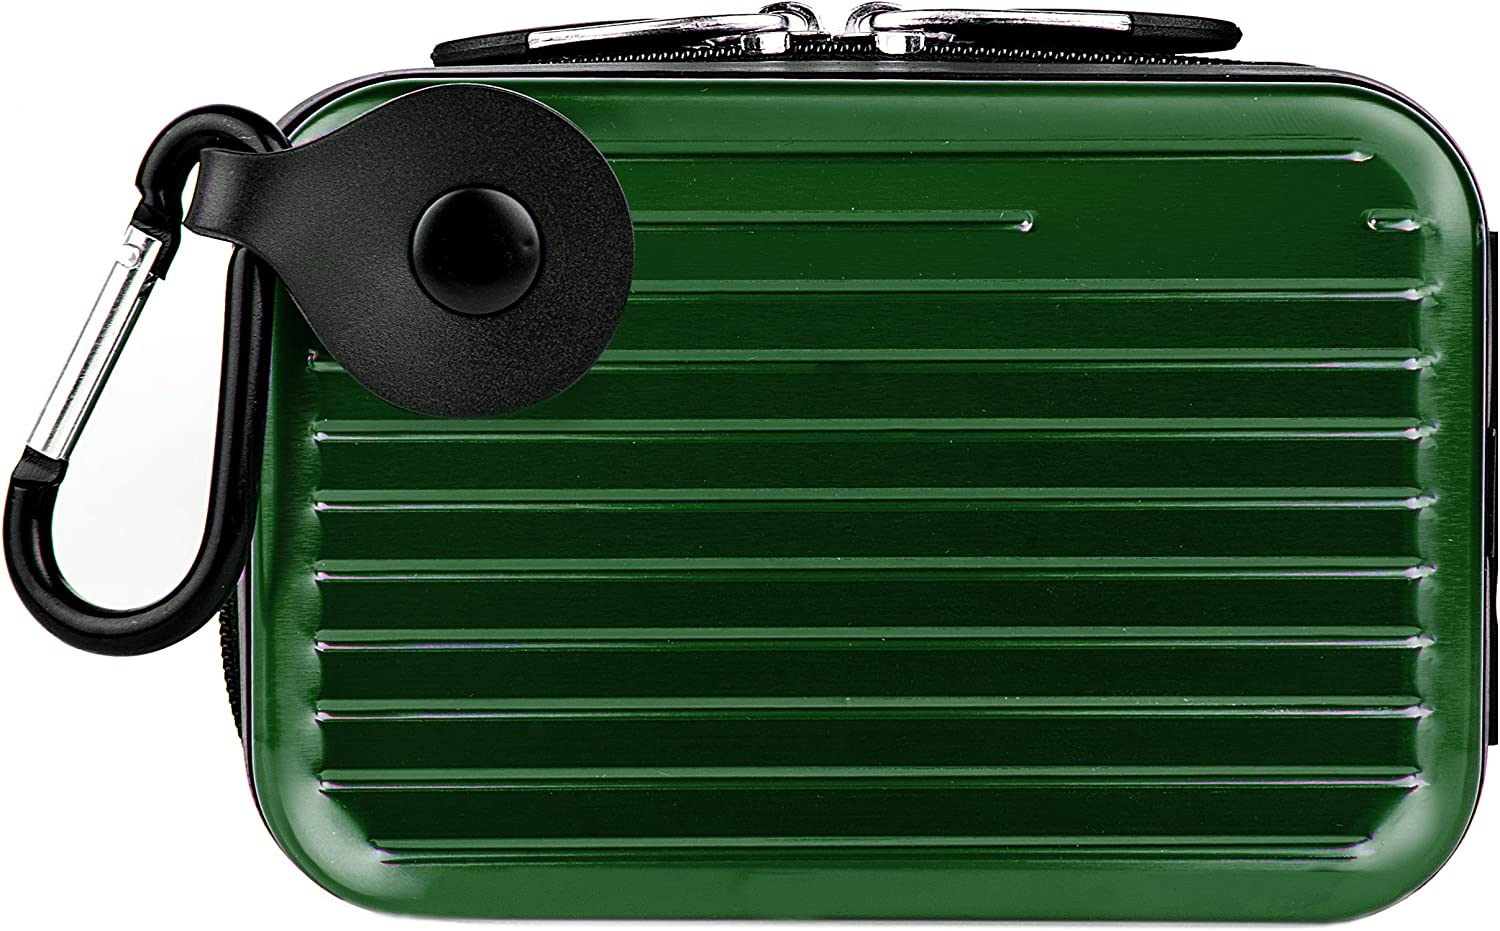 Vangoddy Pascal Mettalic Metal Case for Panasonic Lumix DMC TS30 Digital Cameras and Screen Protector Green